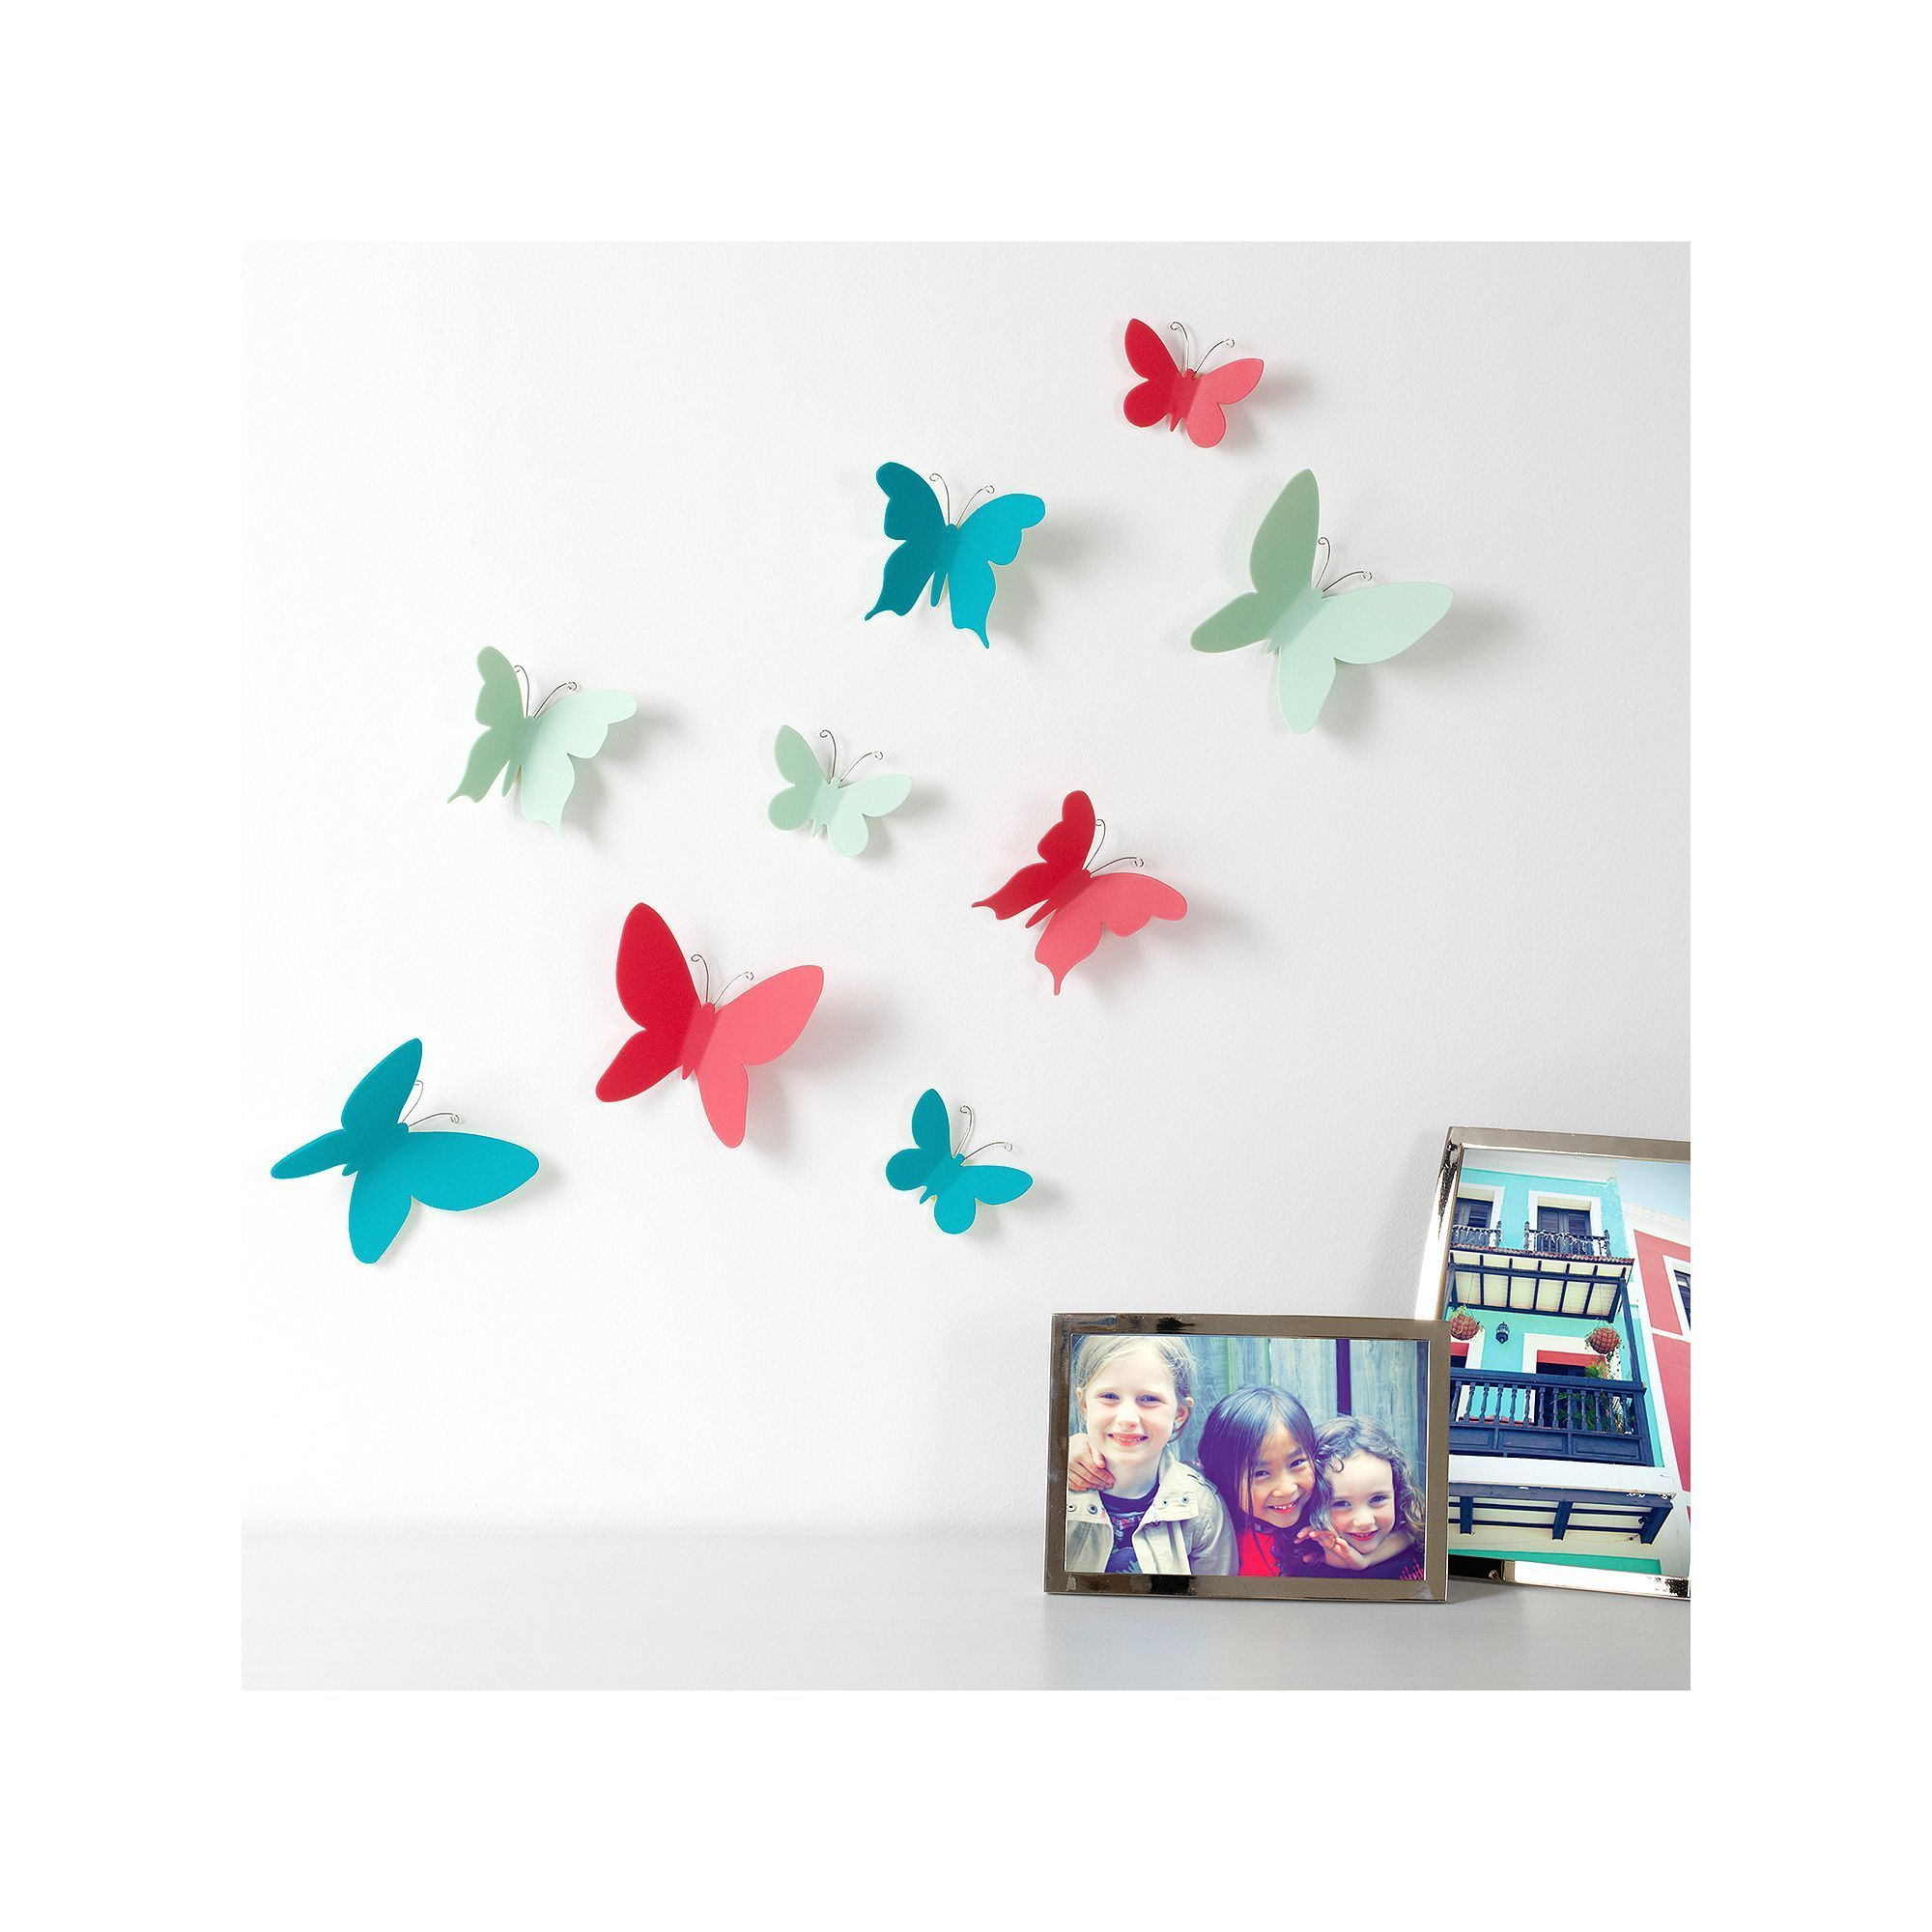 Umbra Mariposa Vibrant Butterfly Wall Decor | Products With Mariposa 9 Piece Wall Decor (View 26 of 30)